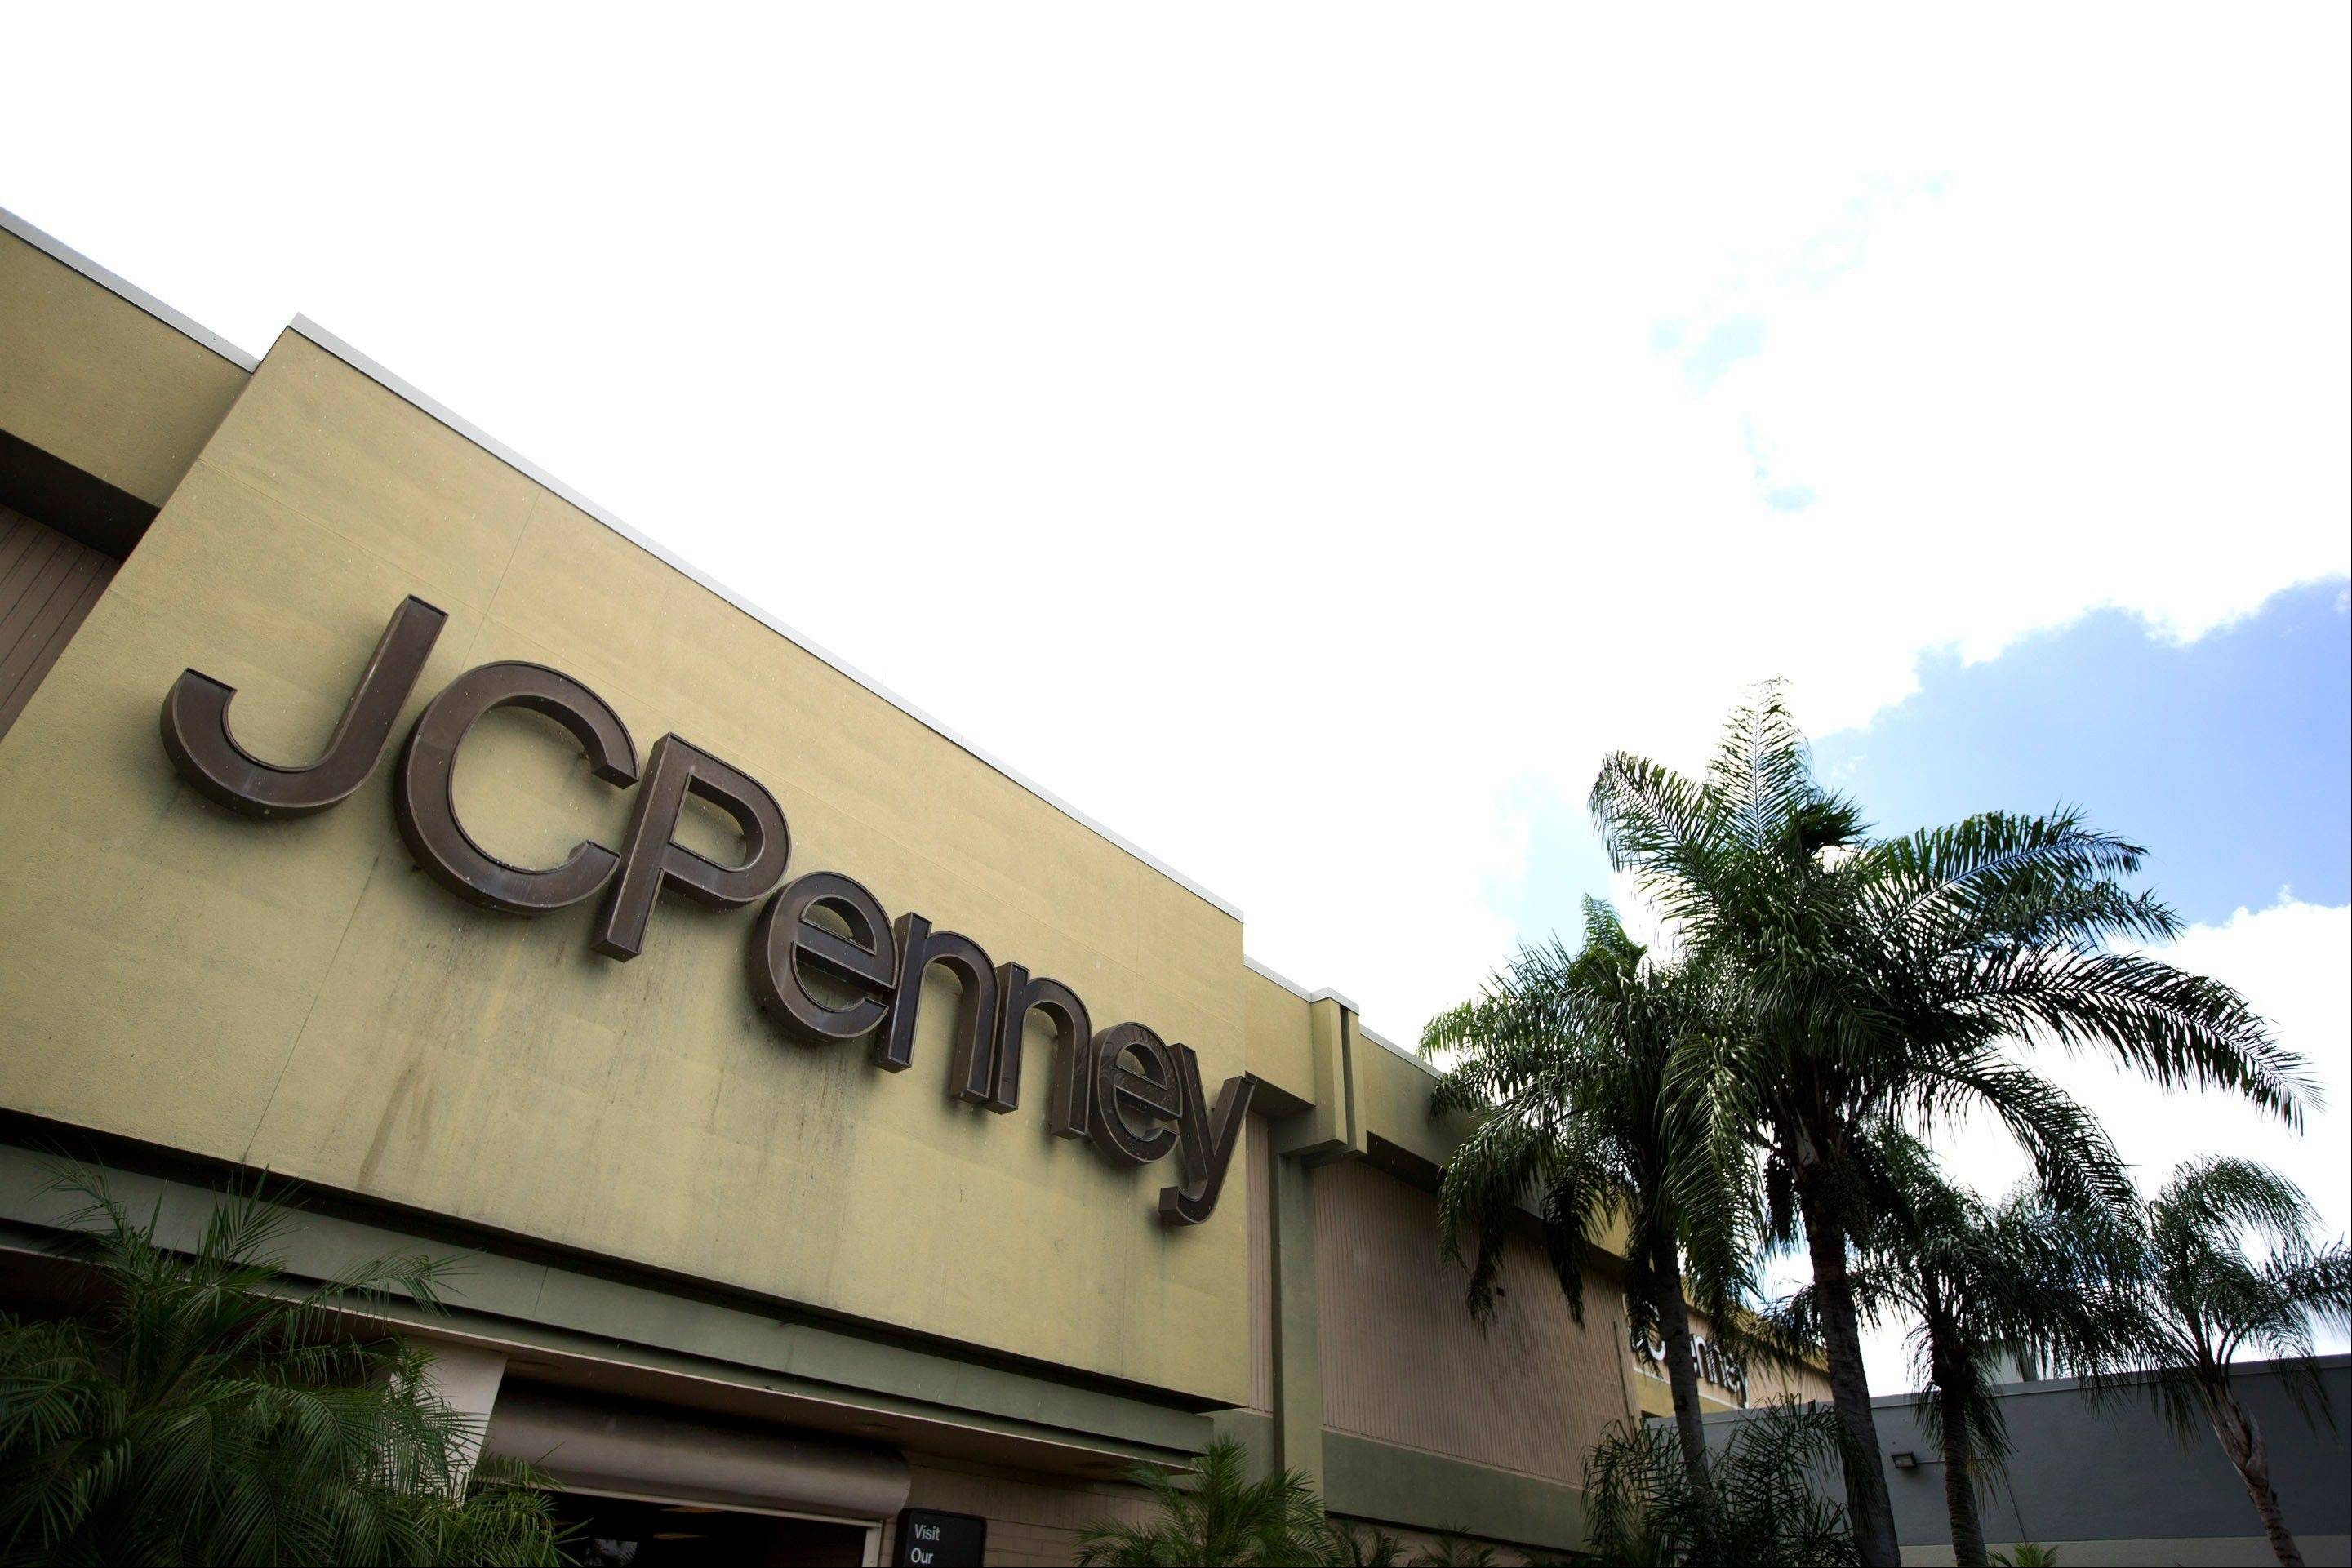 This Monday, Aug. 19, 2013 photo shows the entrance to a J.C. Penney store at a Hialeah, Fla., shopping mall. On Tuesday, Aug. 20, 2013, J.C. Penney reports quarterly financial results. (AP Photo/J Pat Carter)